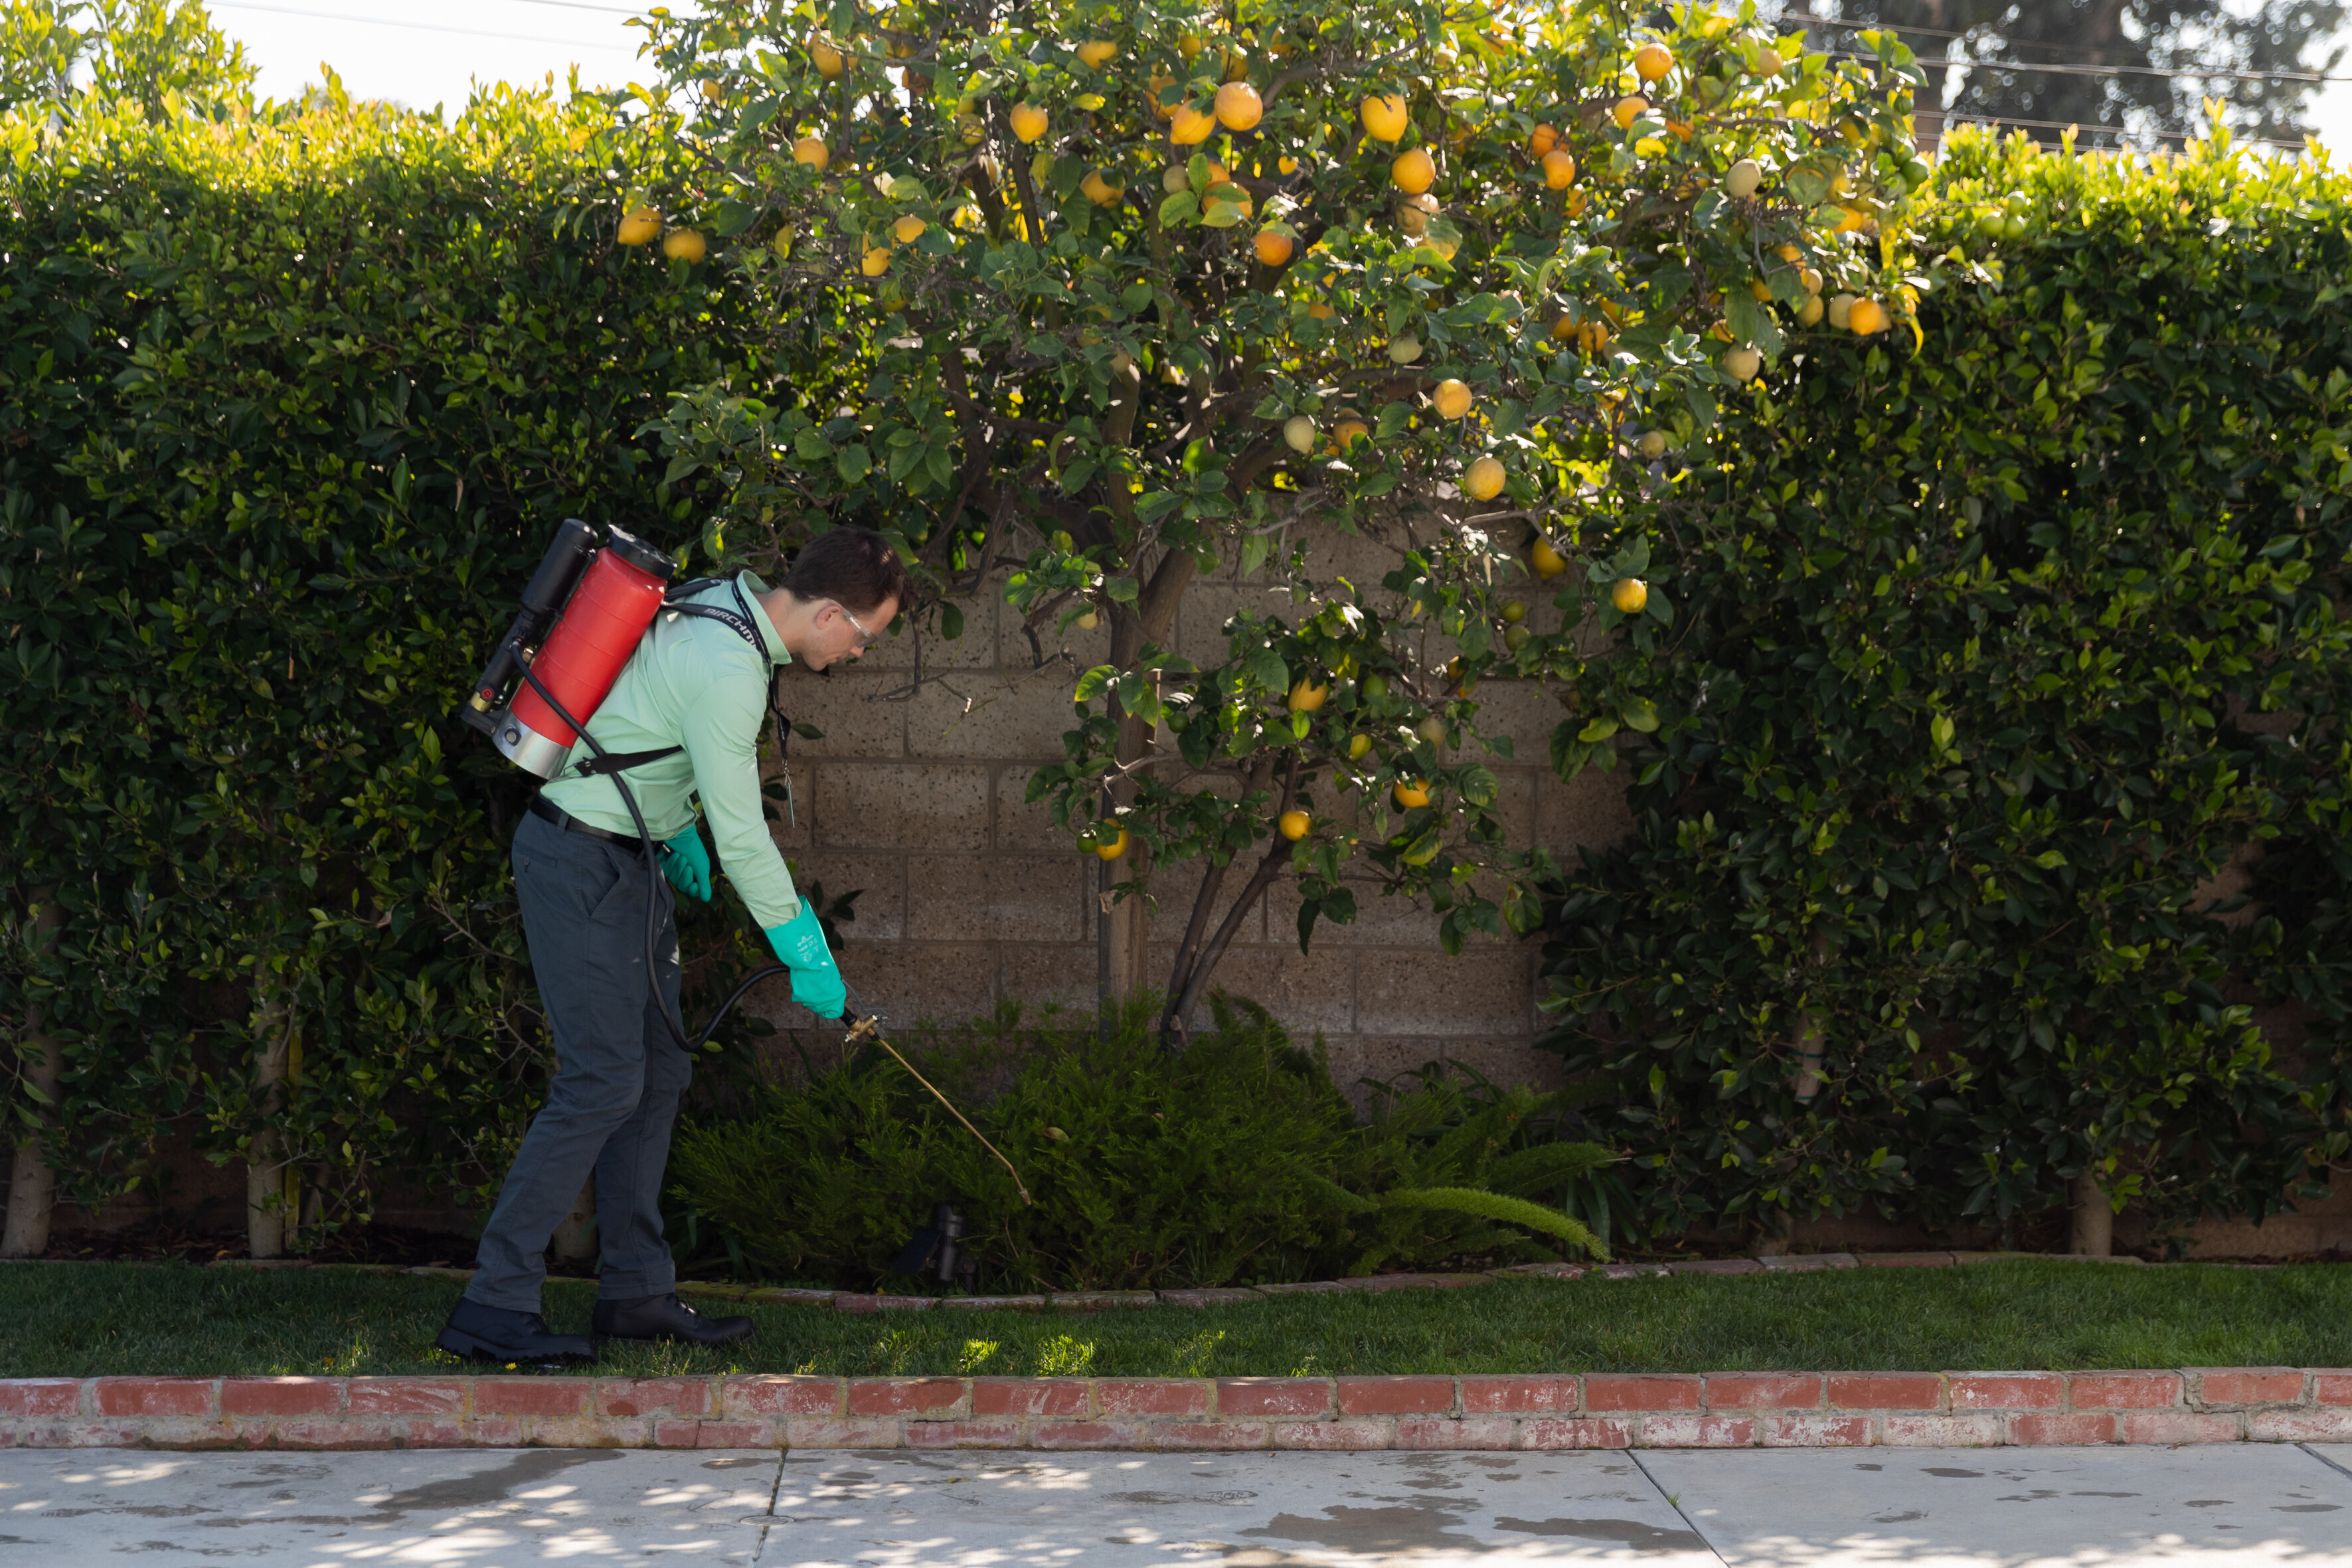 A pest control specialist wearing a green shirt, black pants, and green gloves sprays pest control solution on a green yard near an orange citrus tree.